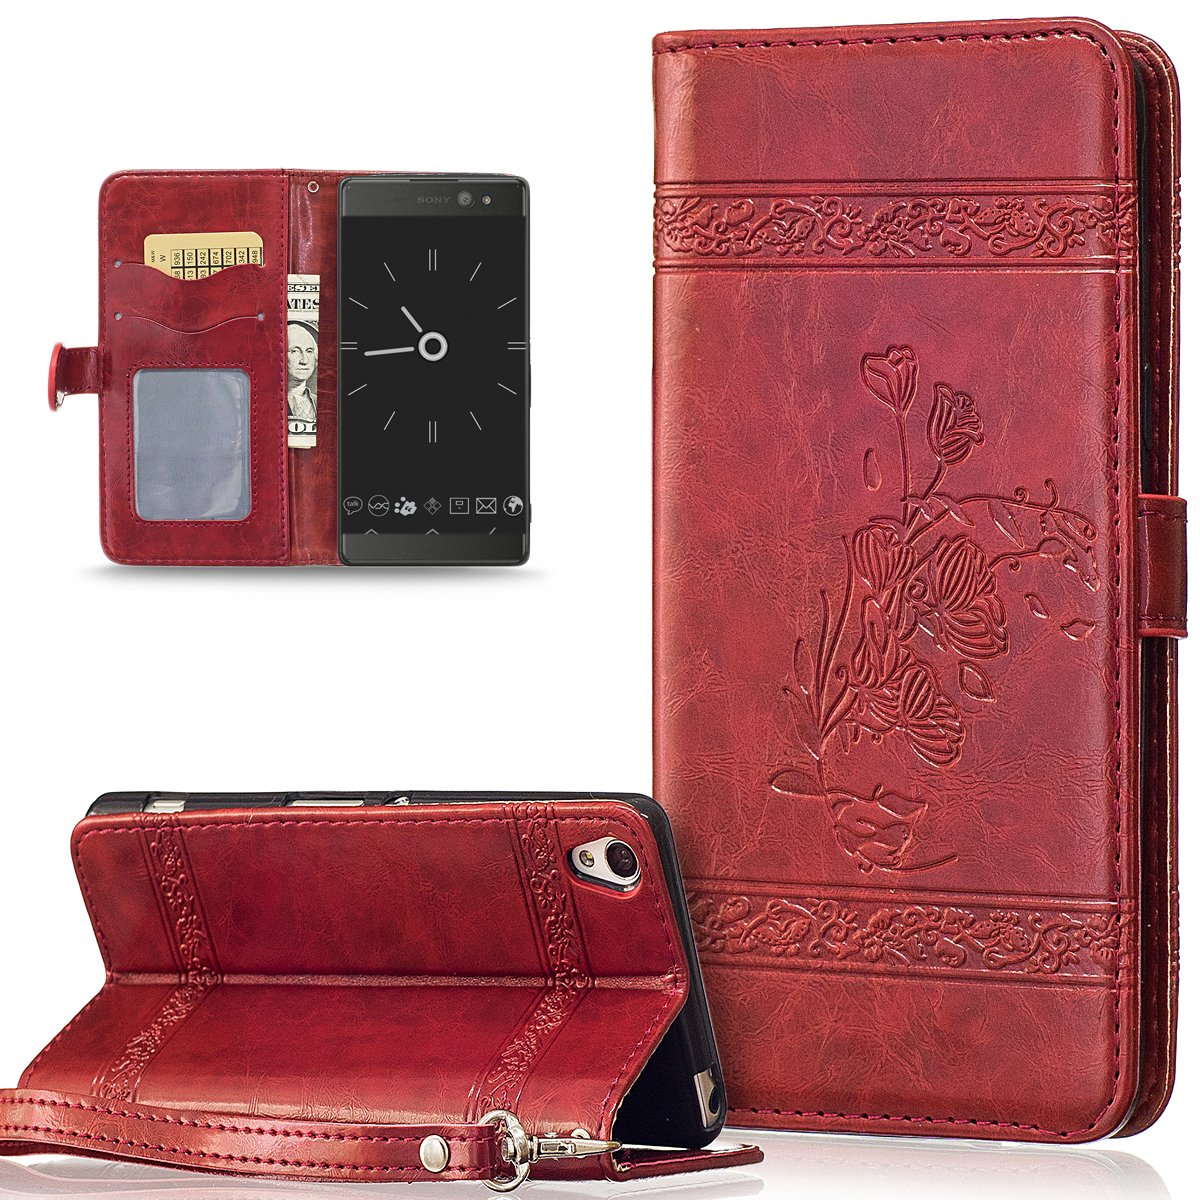 Coque Sony Xperia XA, Etui Sony Xperia XA, ikasus Coque Sony Xperia XA Bookstyle É tui Housse en Cuir Case, Embossing Motif Floral Flower Etui Housse [Stand Feature] Cuir PU Portefeuille Folio Flip Case Cover Wallet Coque Protection É tui ave